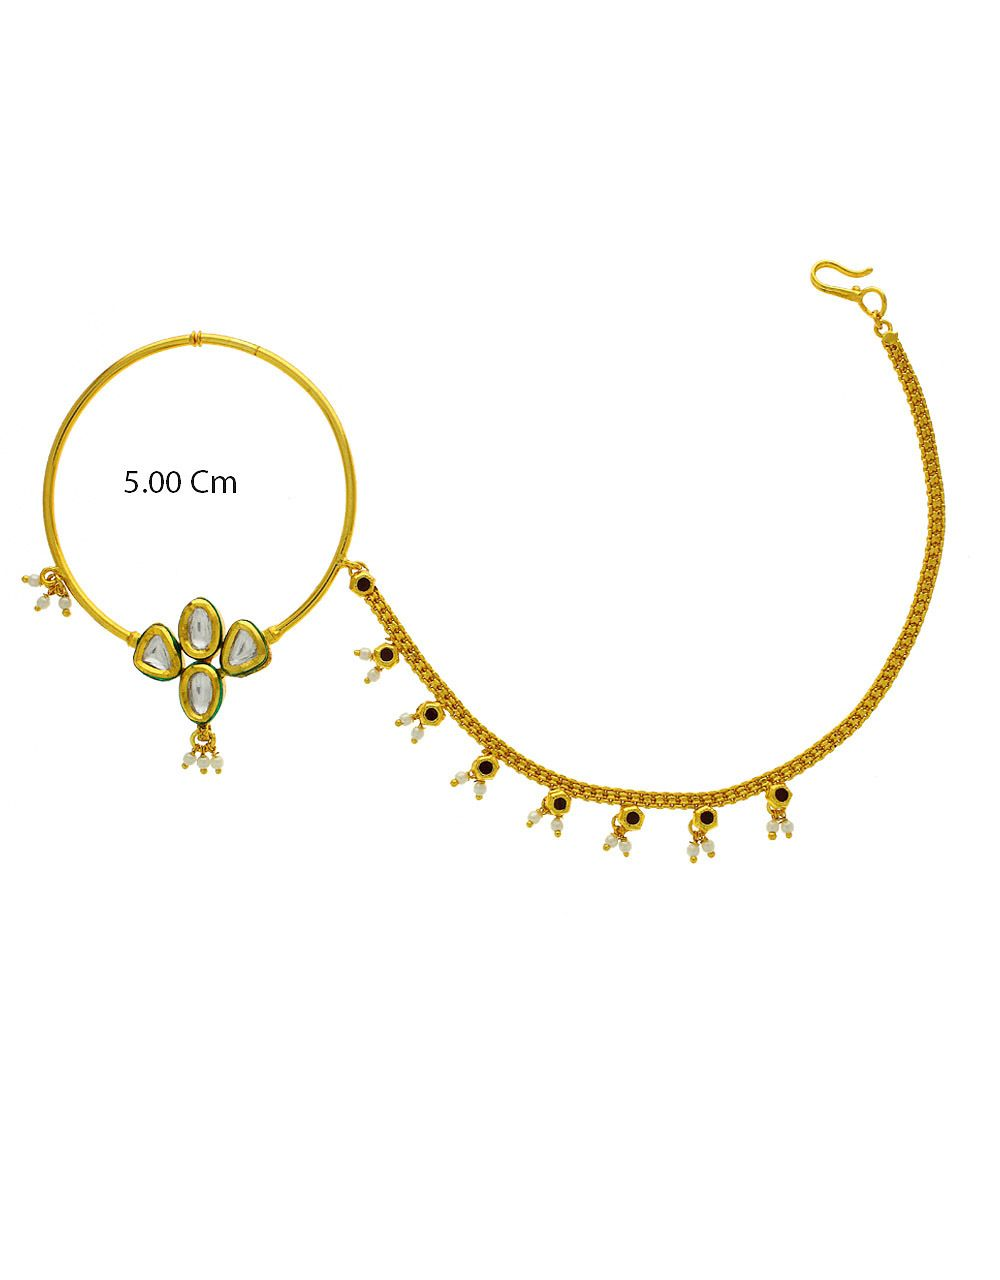 Designer Kundan Studded Bridal Nose Nath For Women Nose Ring